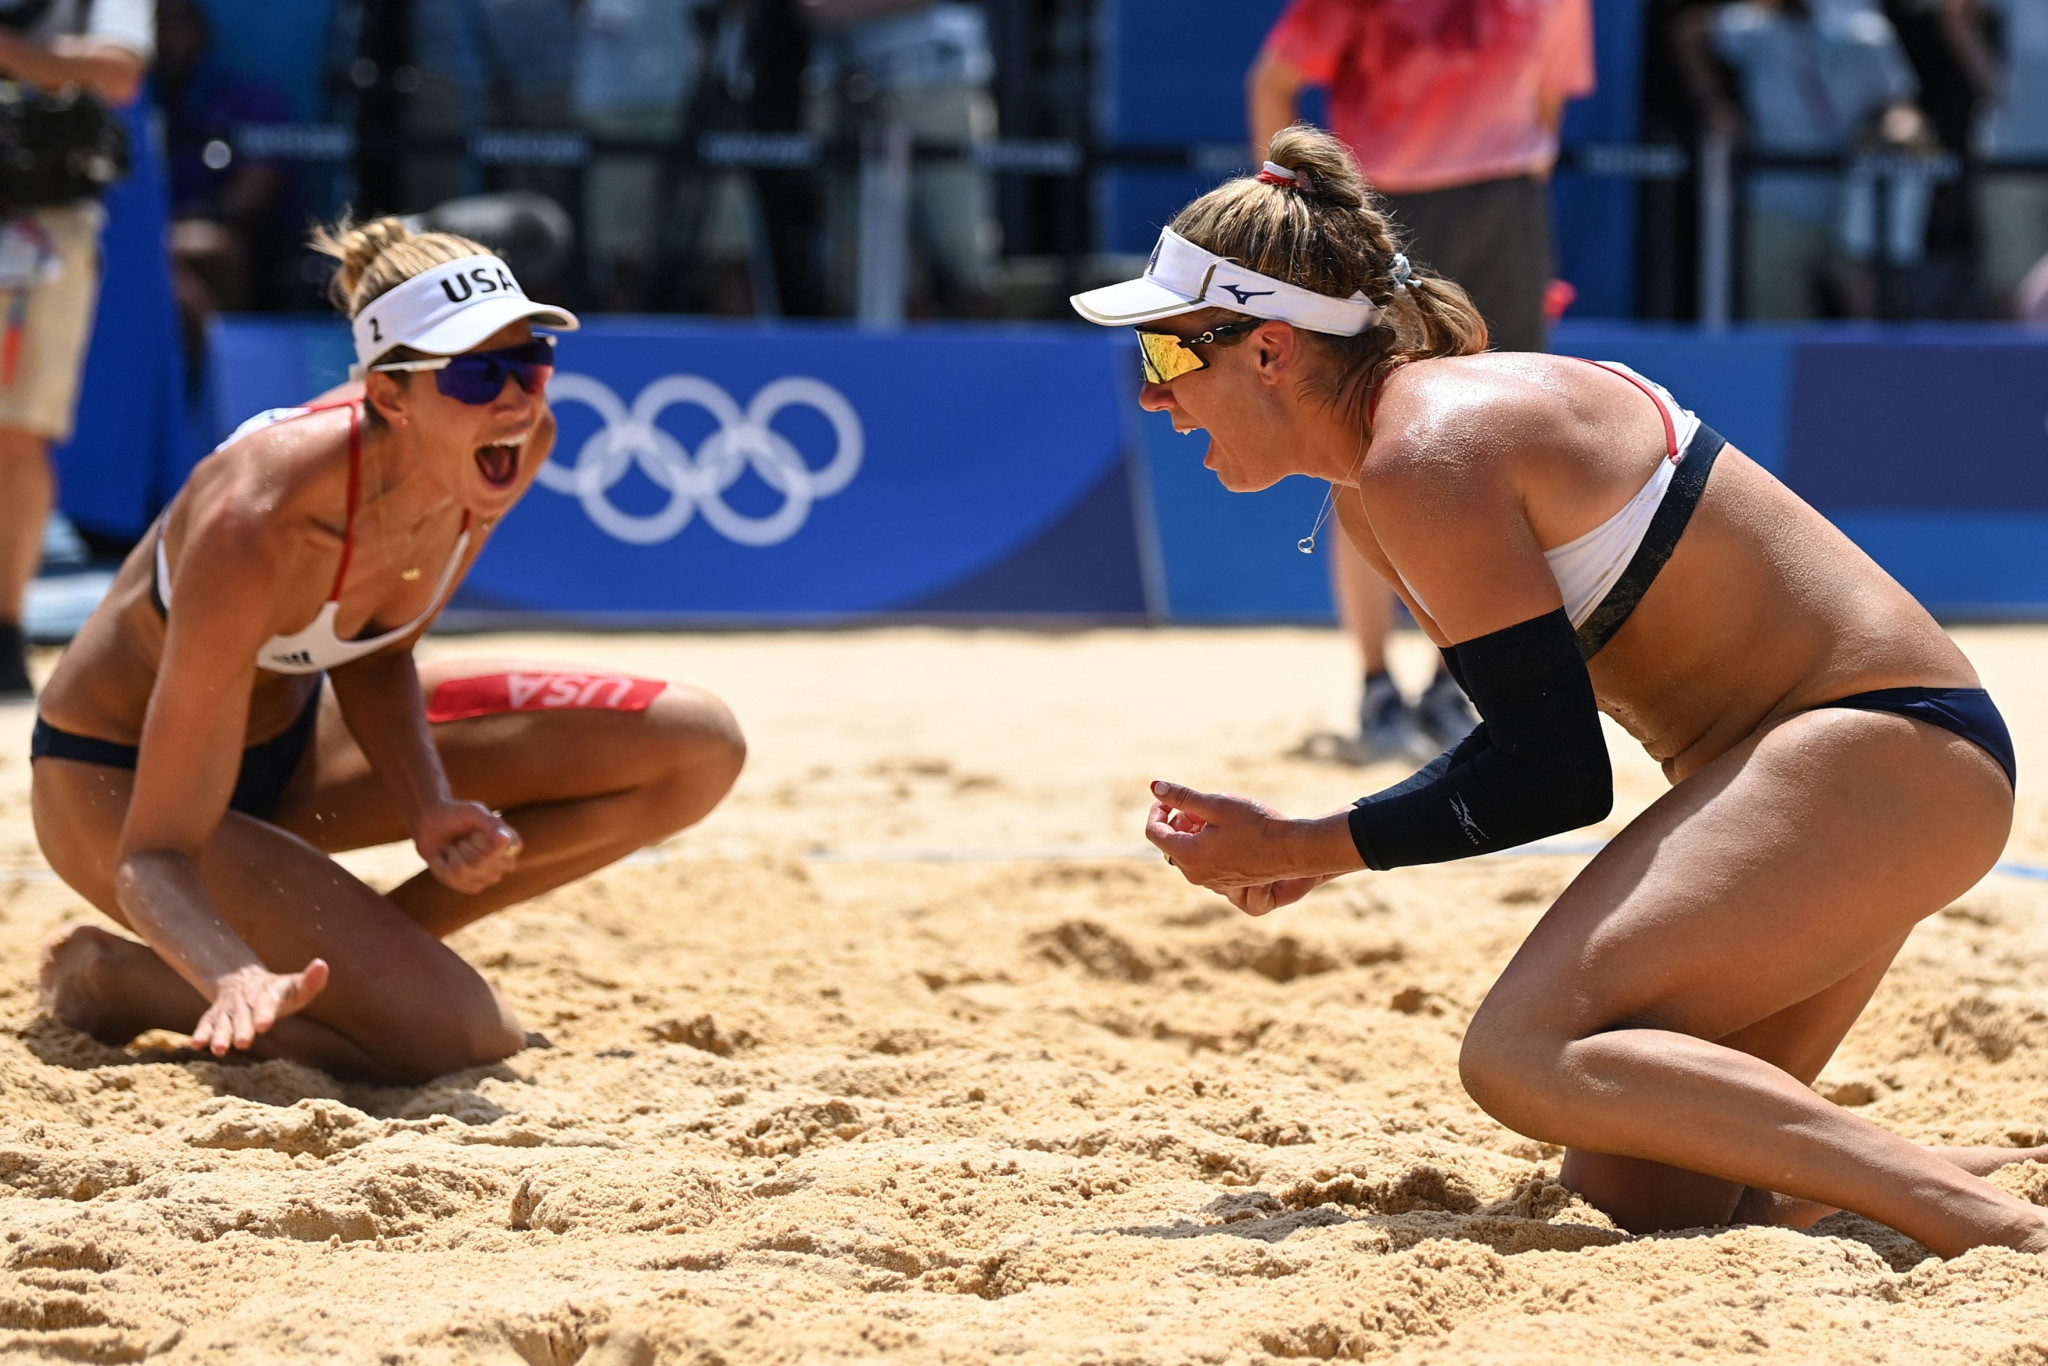 Ross and Klineman handle searing heat to win Olympic beach volleyball gold